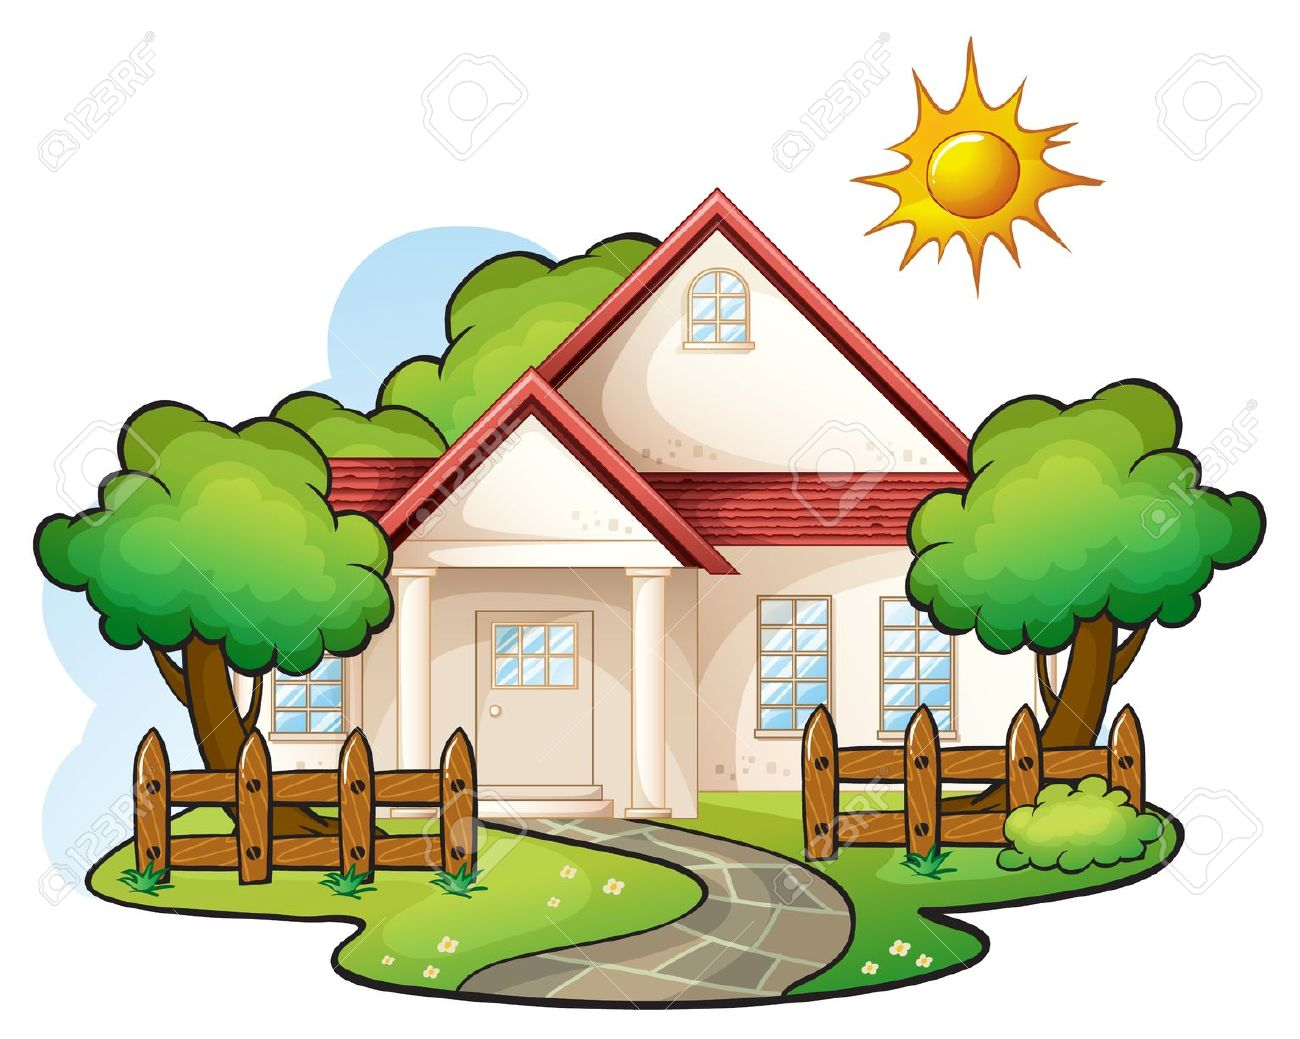 House hd clipart image library Image Of A House | Free download best Image Of A House on ... image library